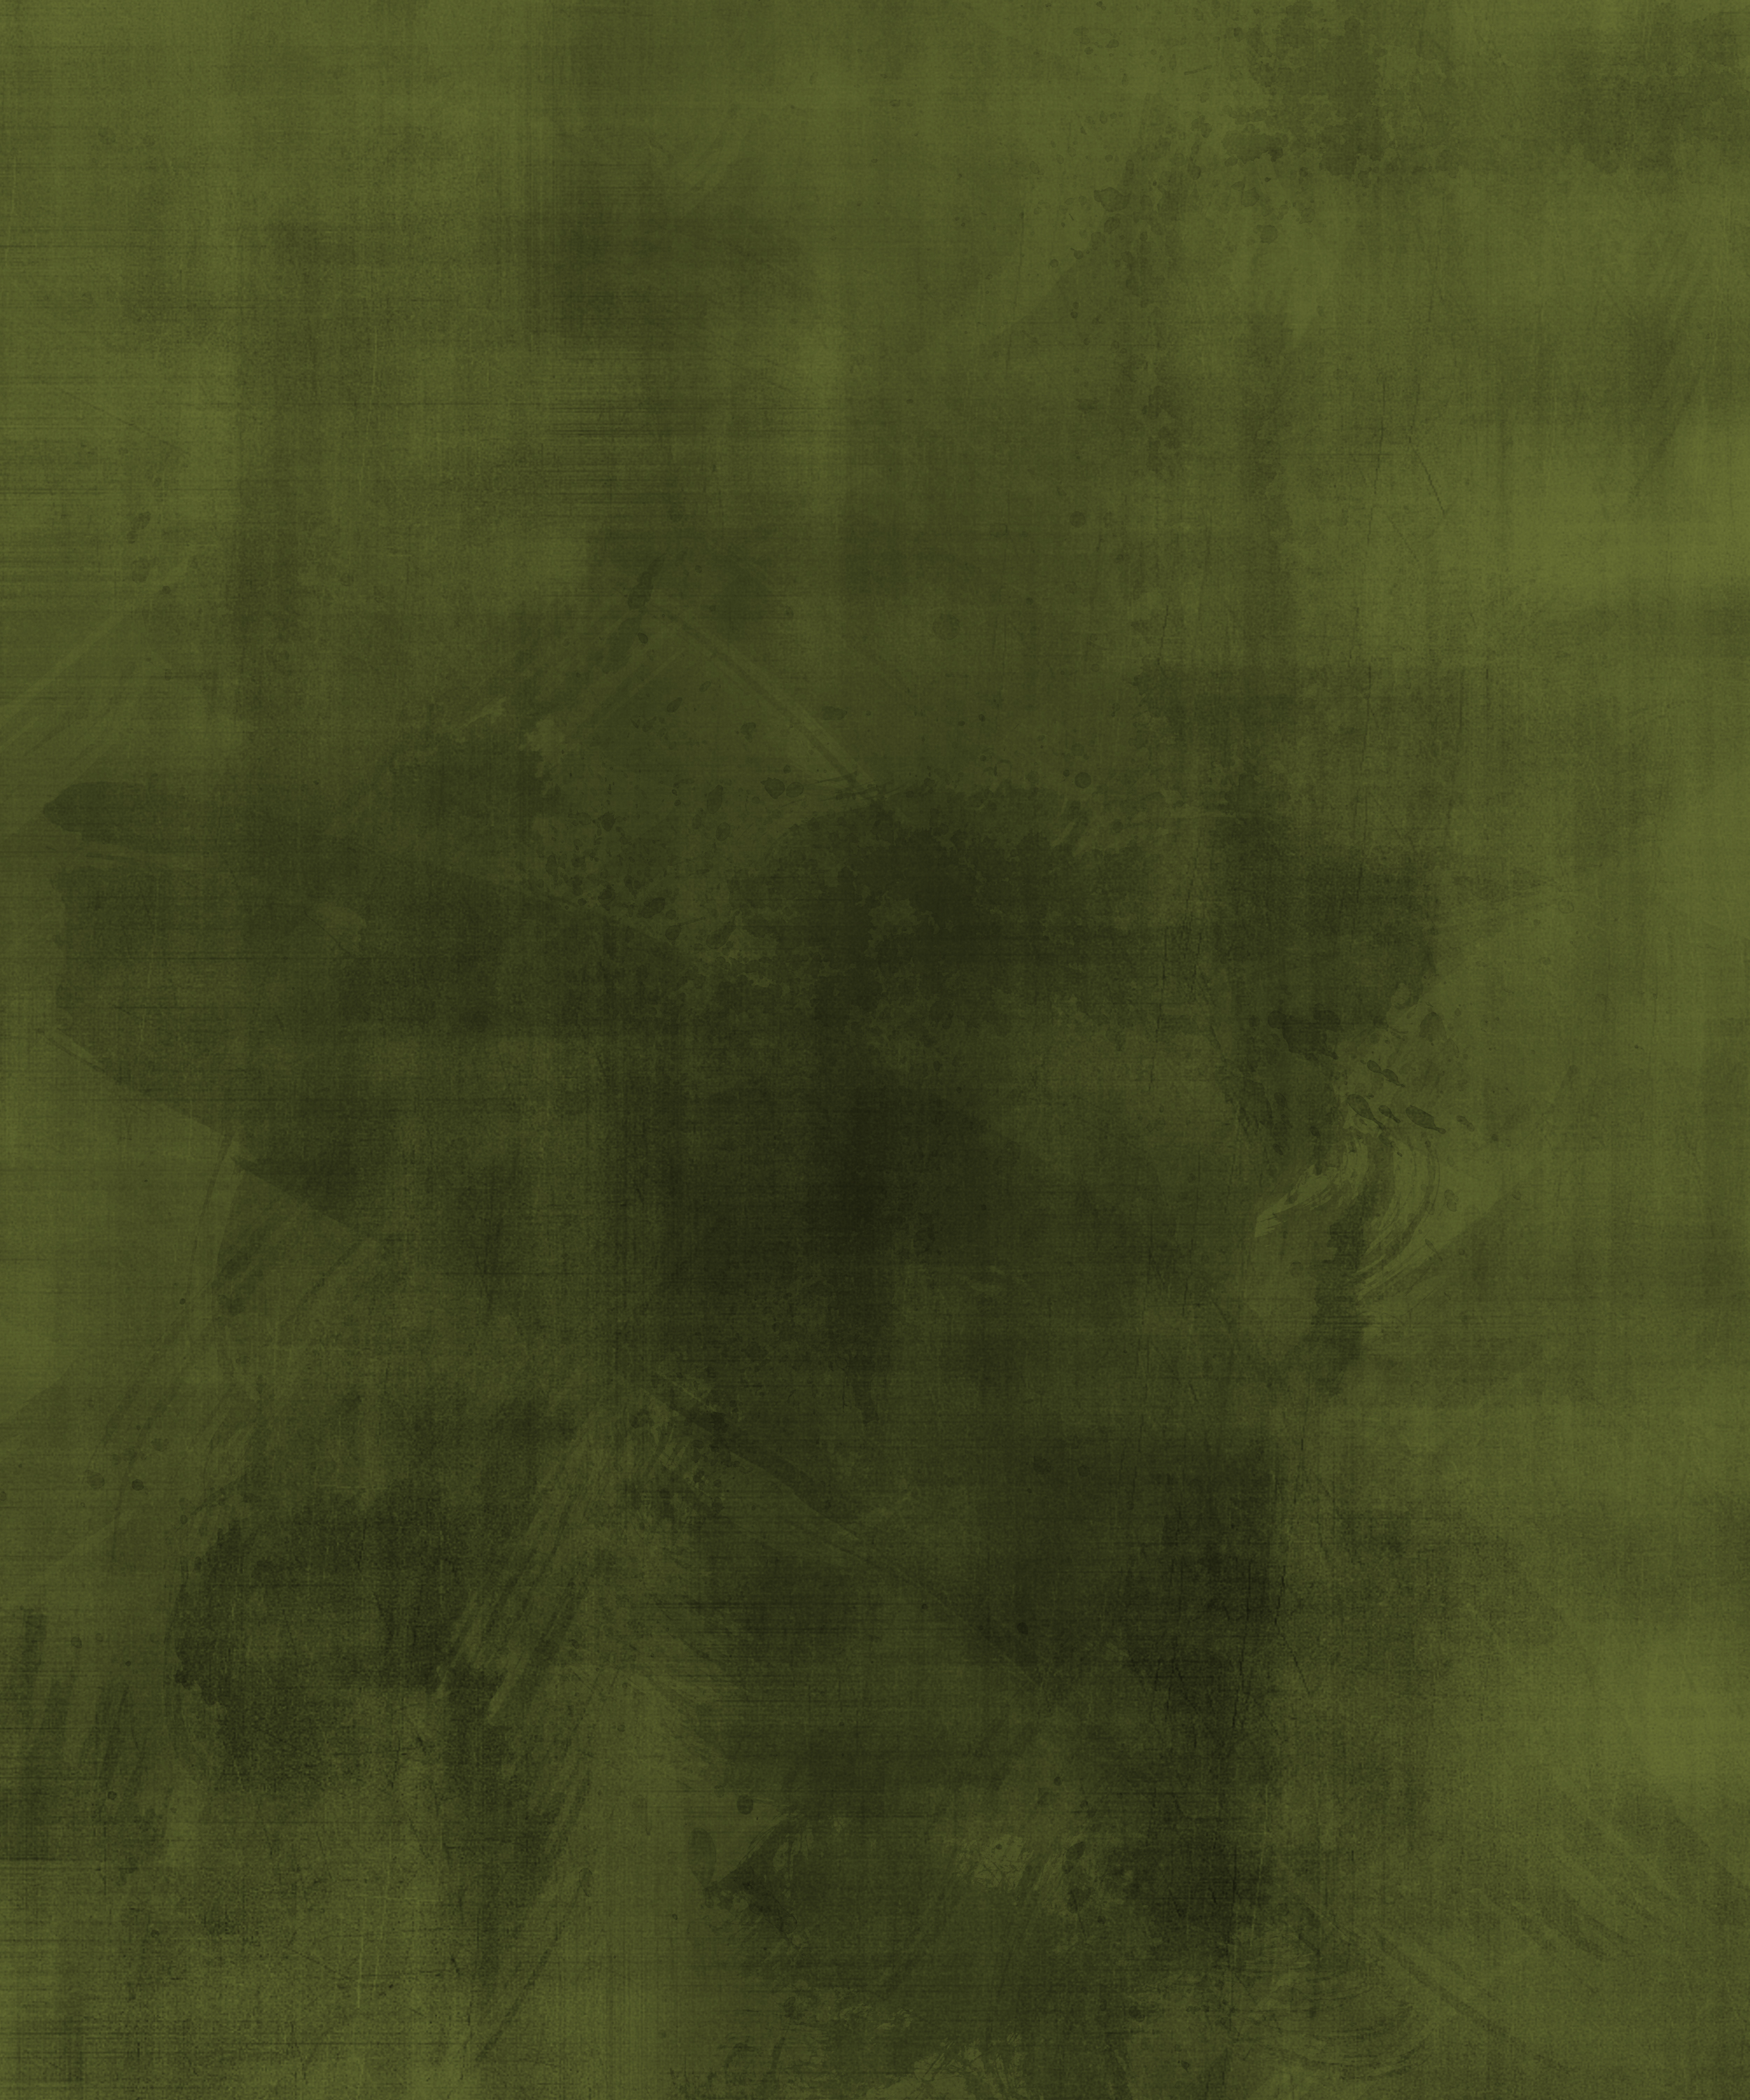 Green grunge texture background image, free download